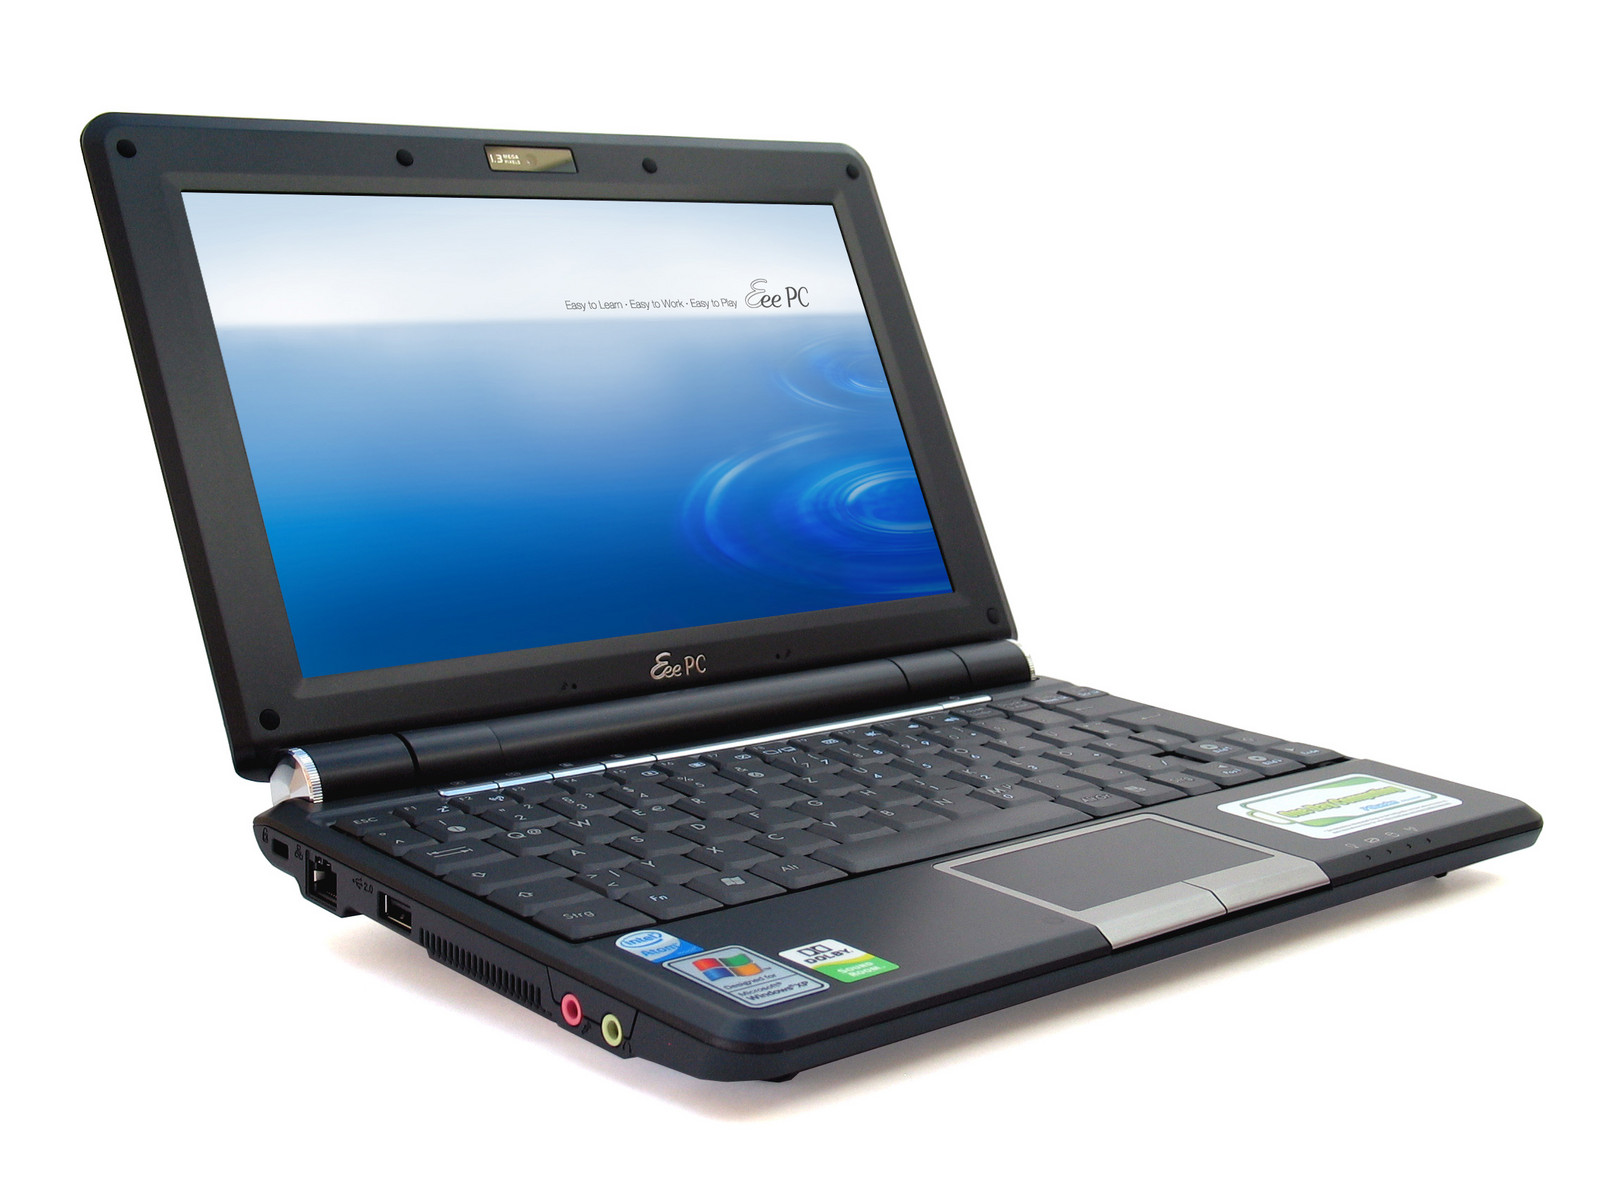 EEE PC 1000HE CARD READER DRIVERS WINDOWS XP